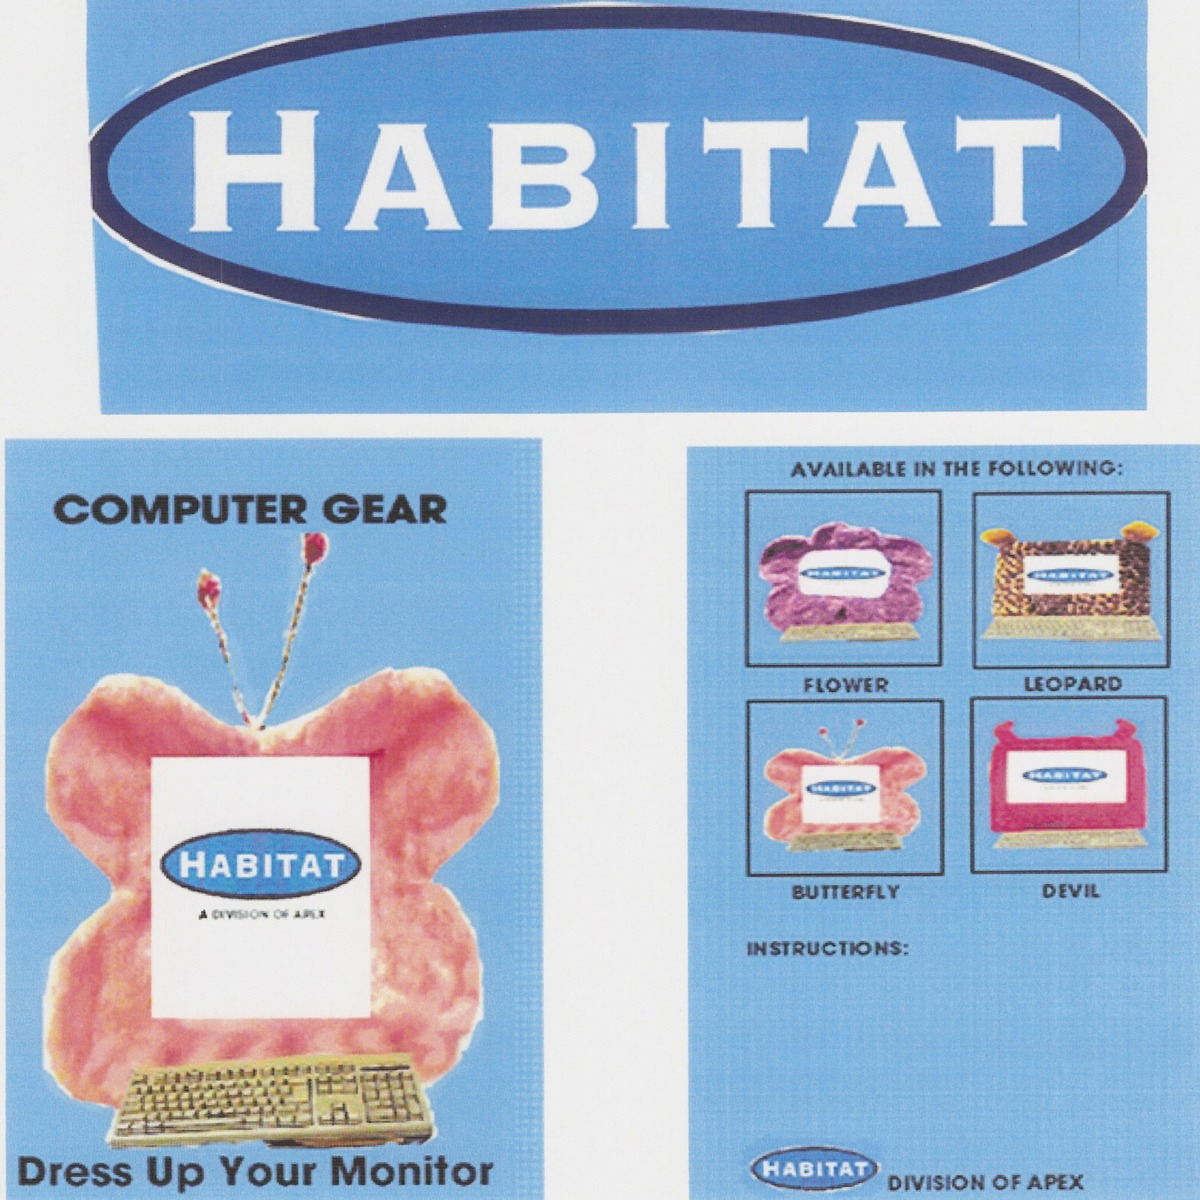 Packaging for Habitat firm